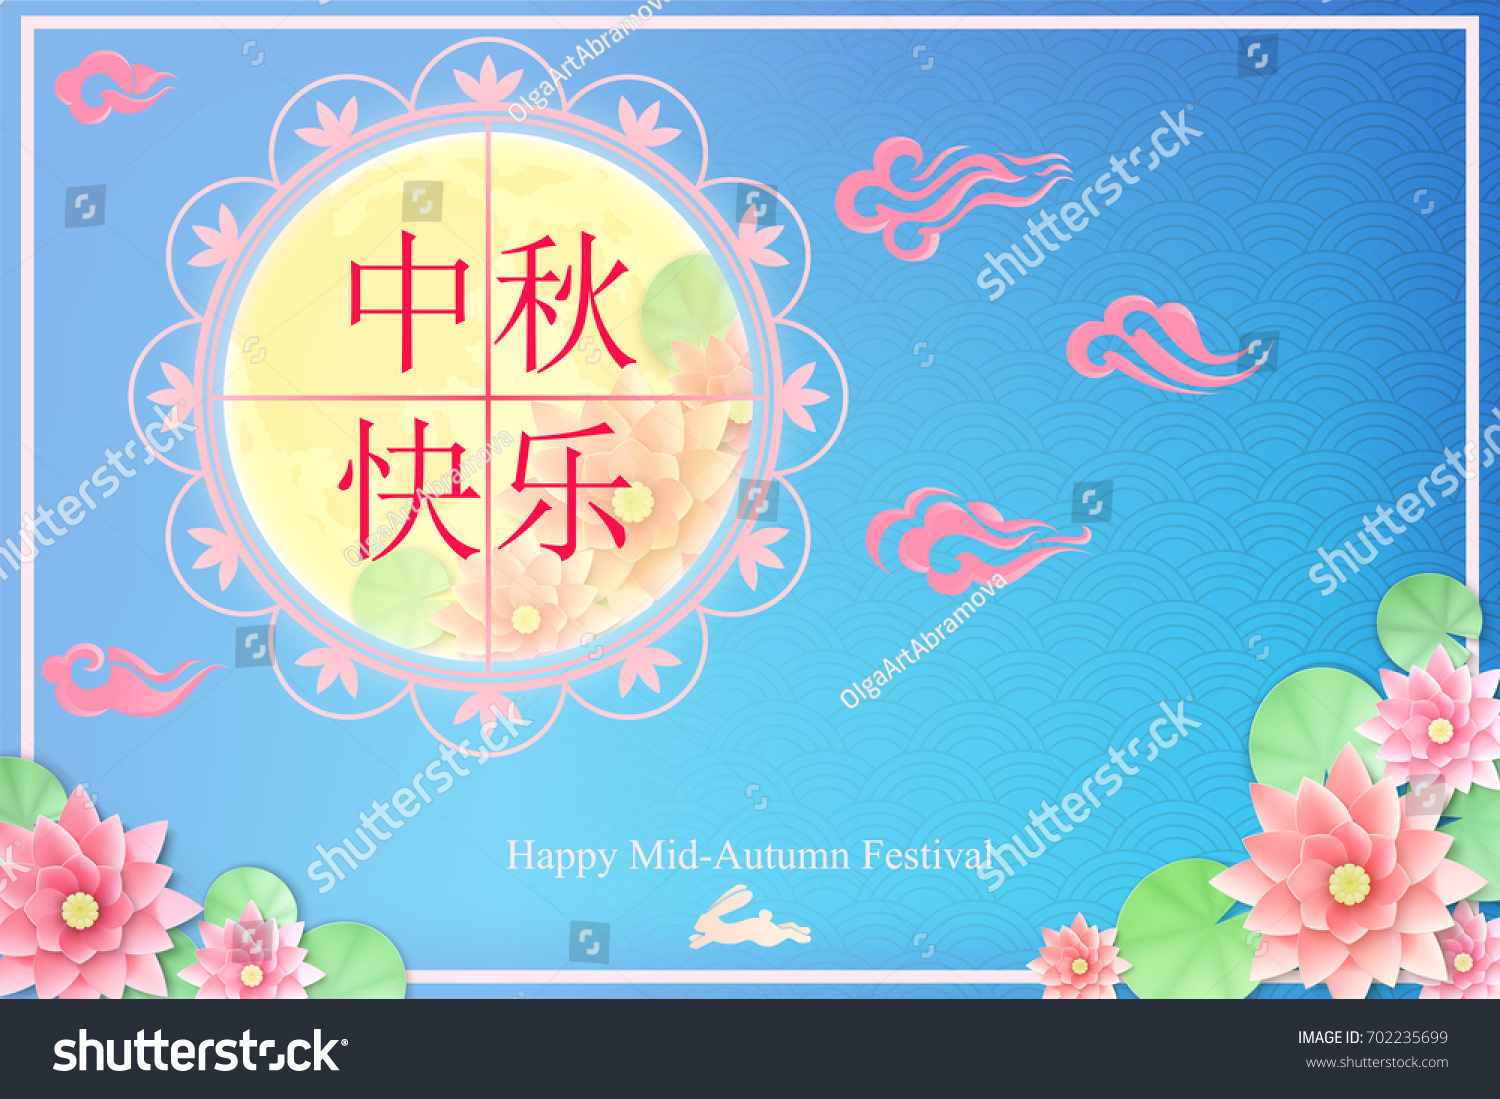 Chinese mid autumn festival greeting card stock vector 702235699 chinese mid autumn festival greeting card with moon rabbit and flowers chinese hieroglyphs are kristyandbryce Choice Image